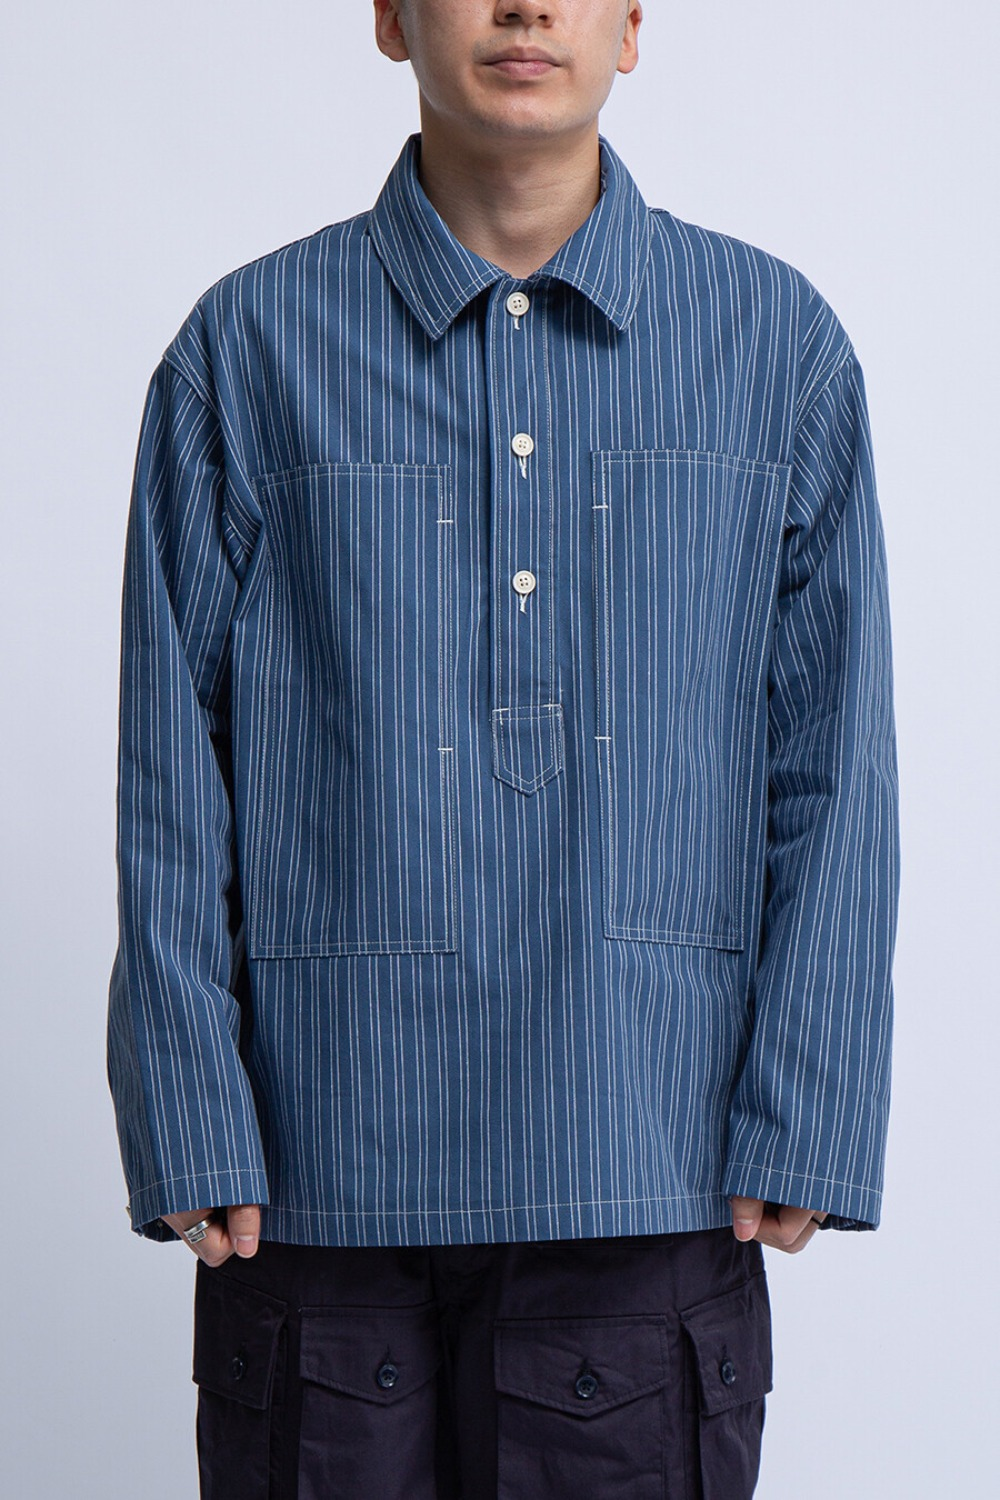 ARMY SHIRT BLUE WHITE WORKERS STRIPE